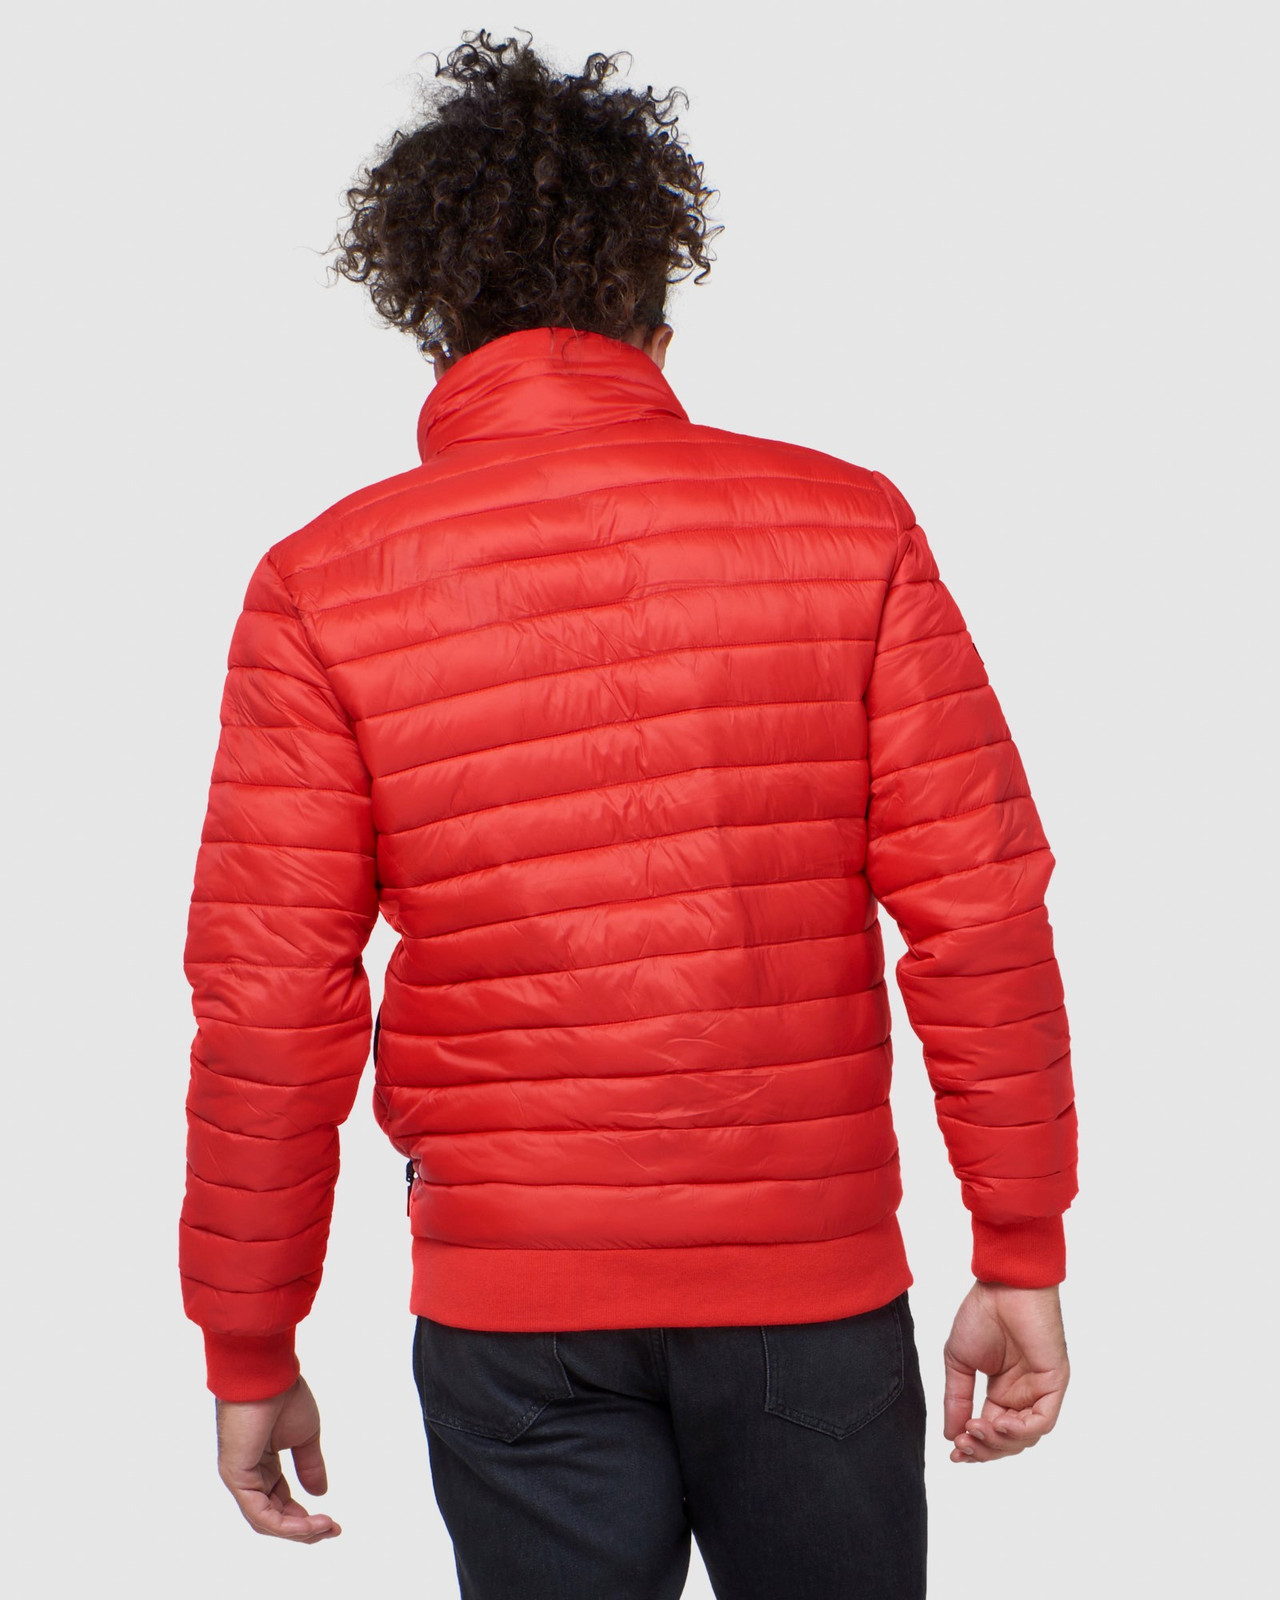 Superdry Mens FUJI BOMBER Red Puffer Jackets 7